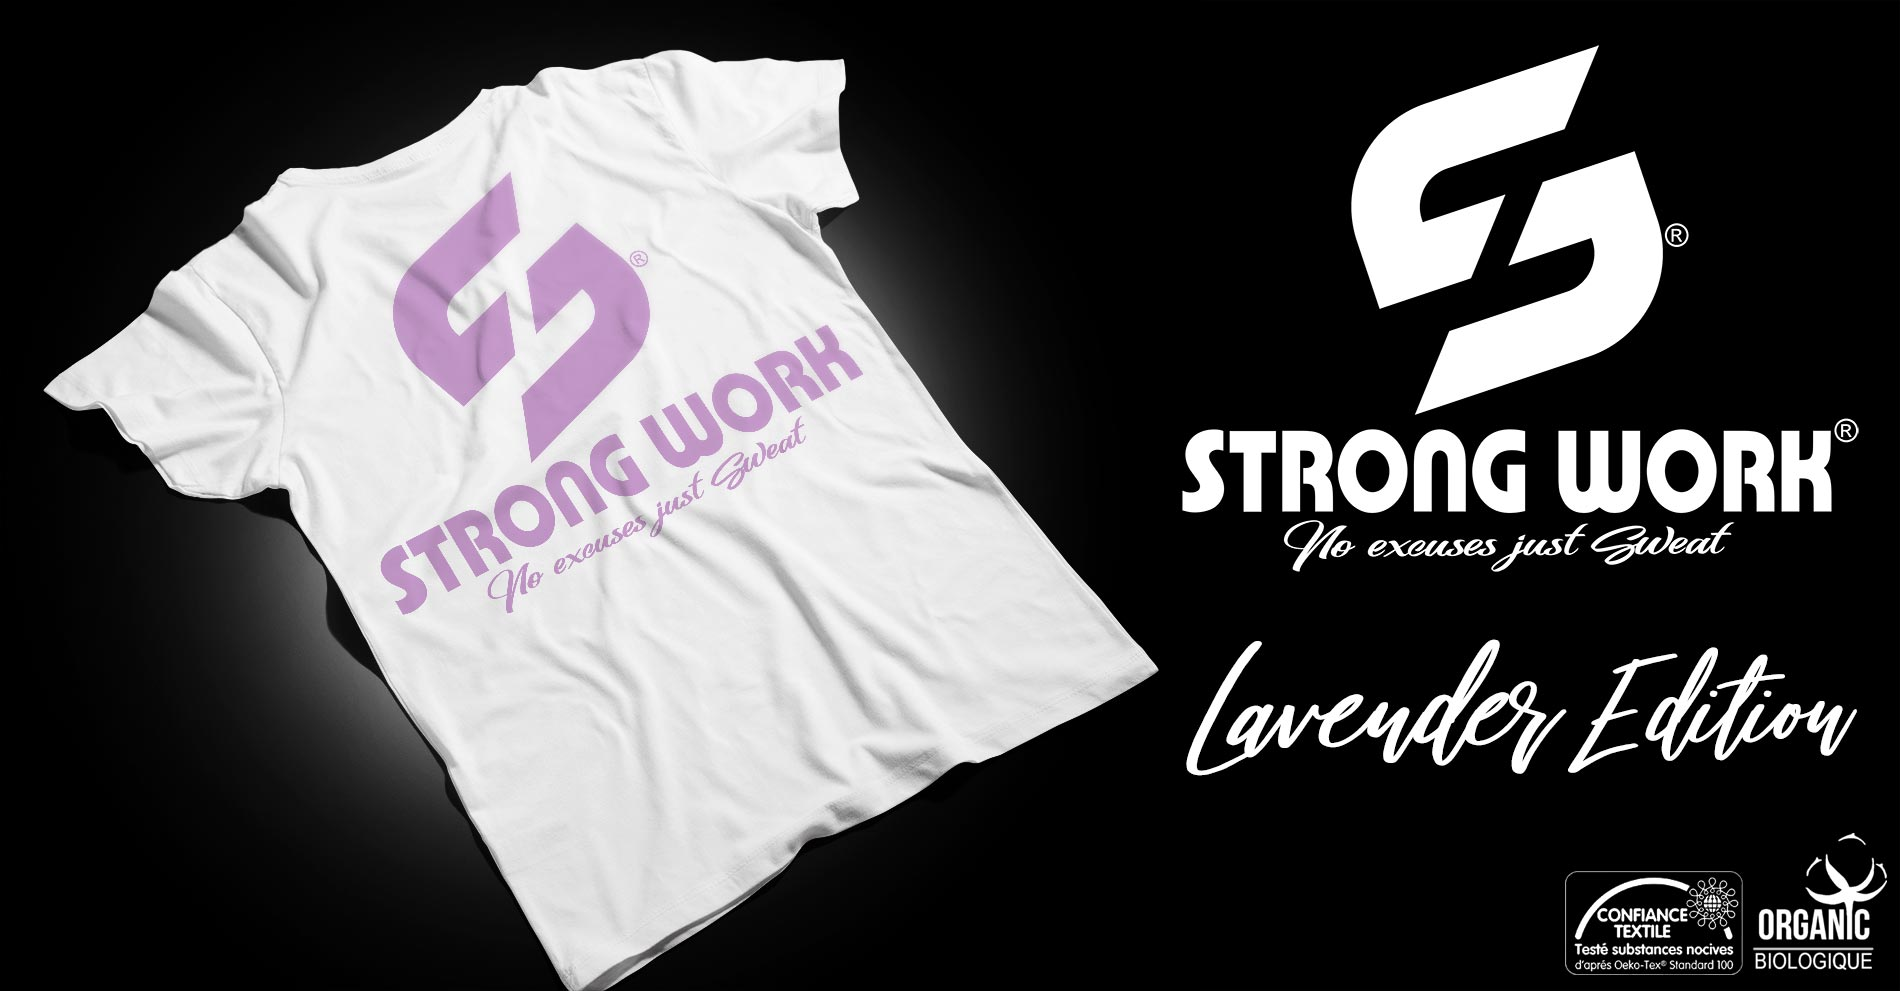 STRONG WORK LAVENDER EDITION POUR HOMME - SPORTSWEAR ECO-RESPONSABLE